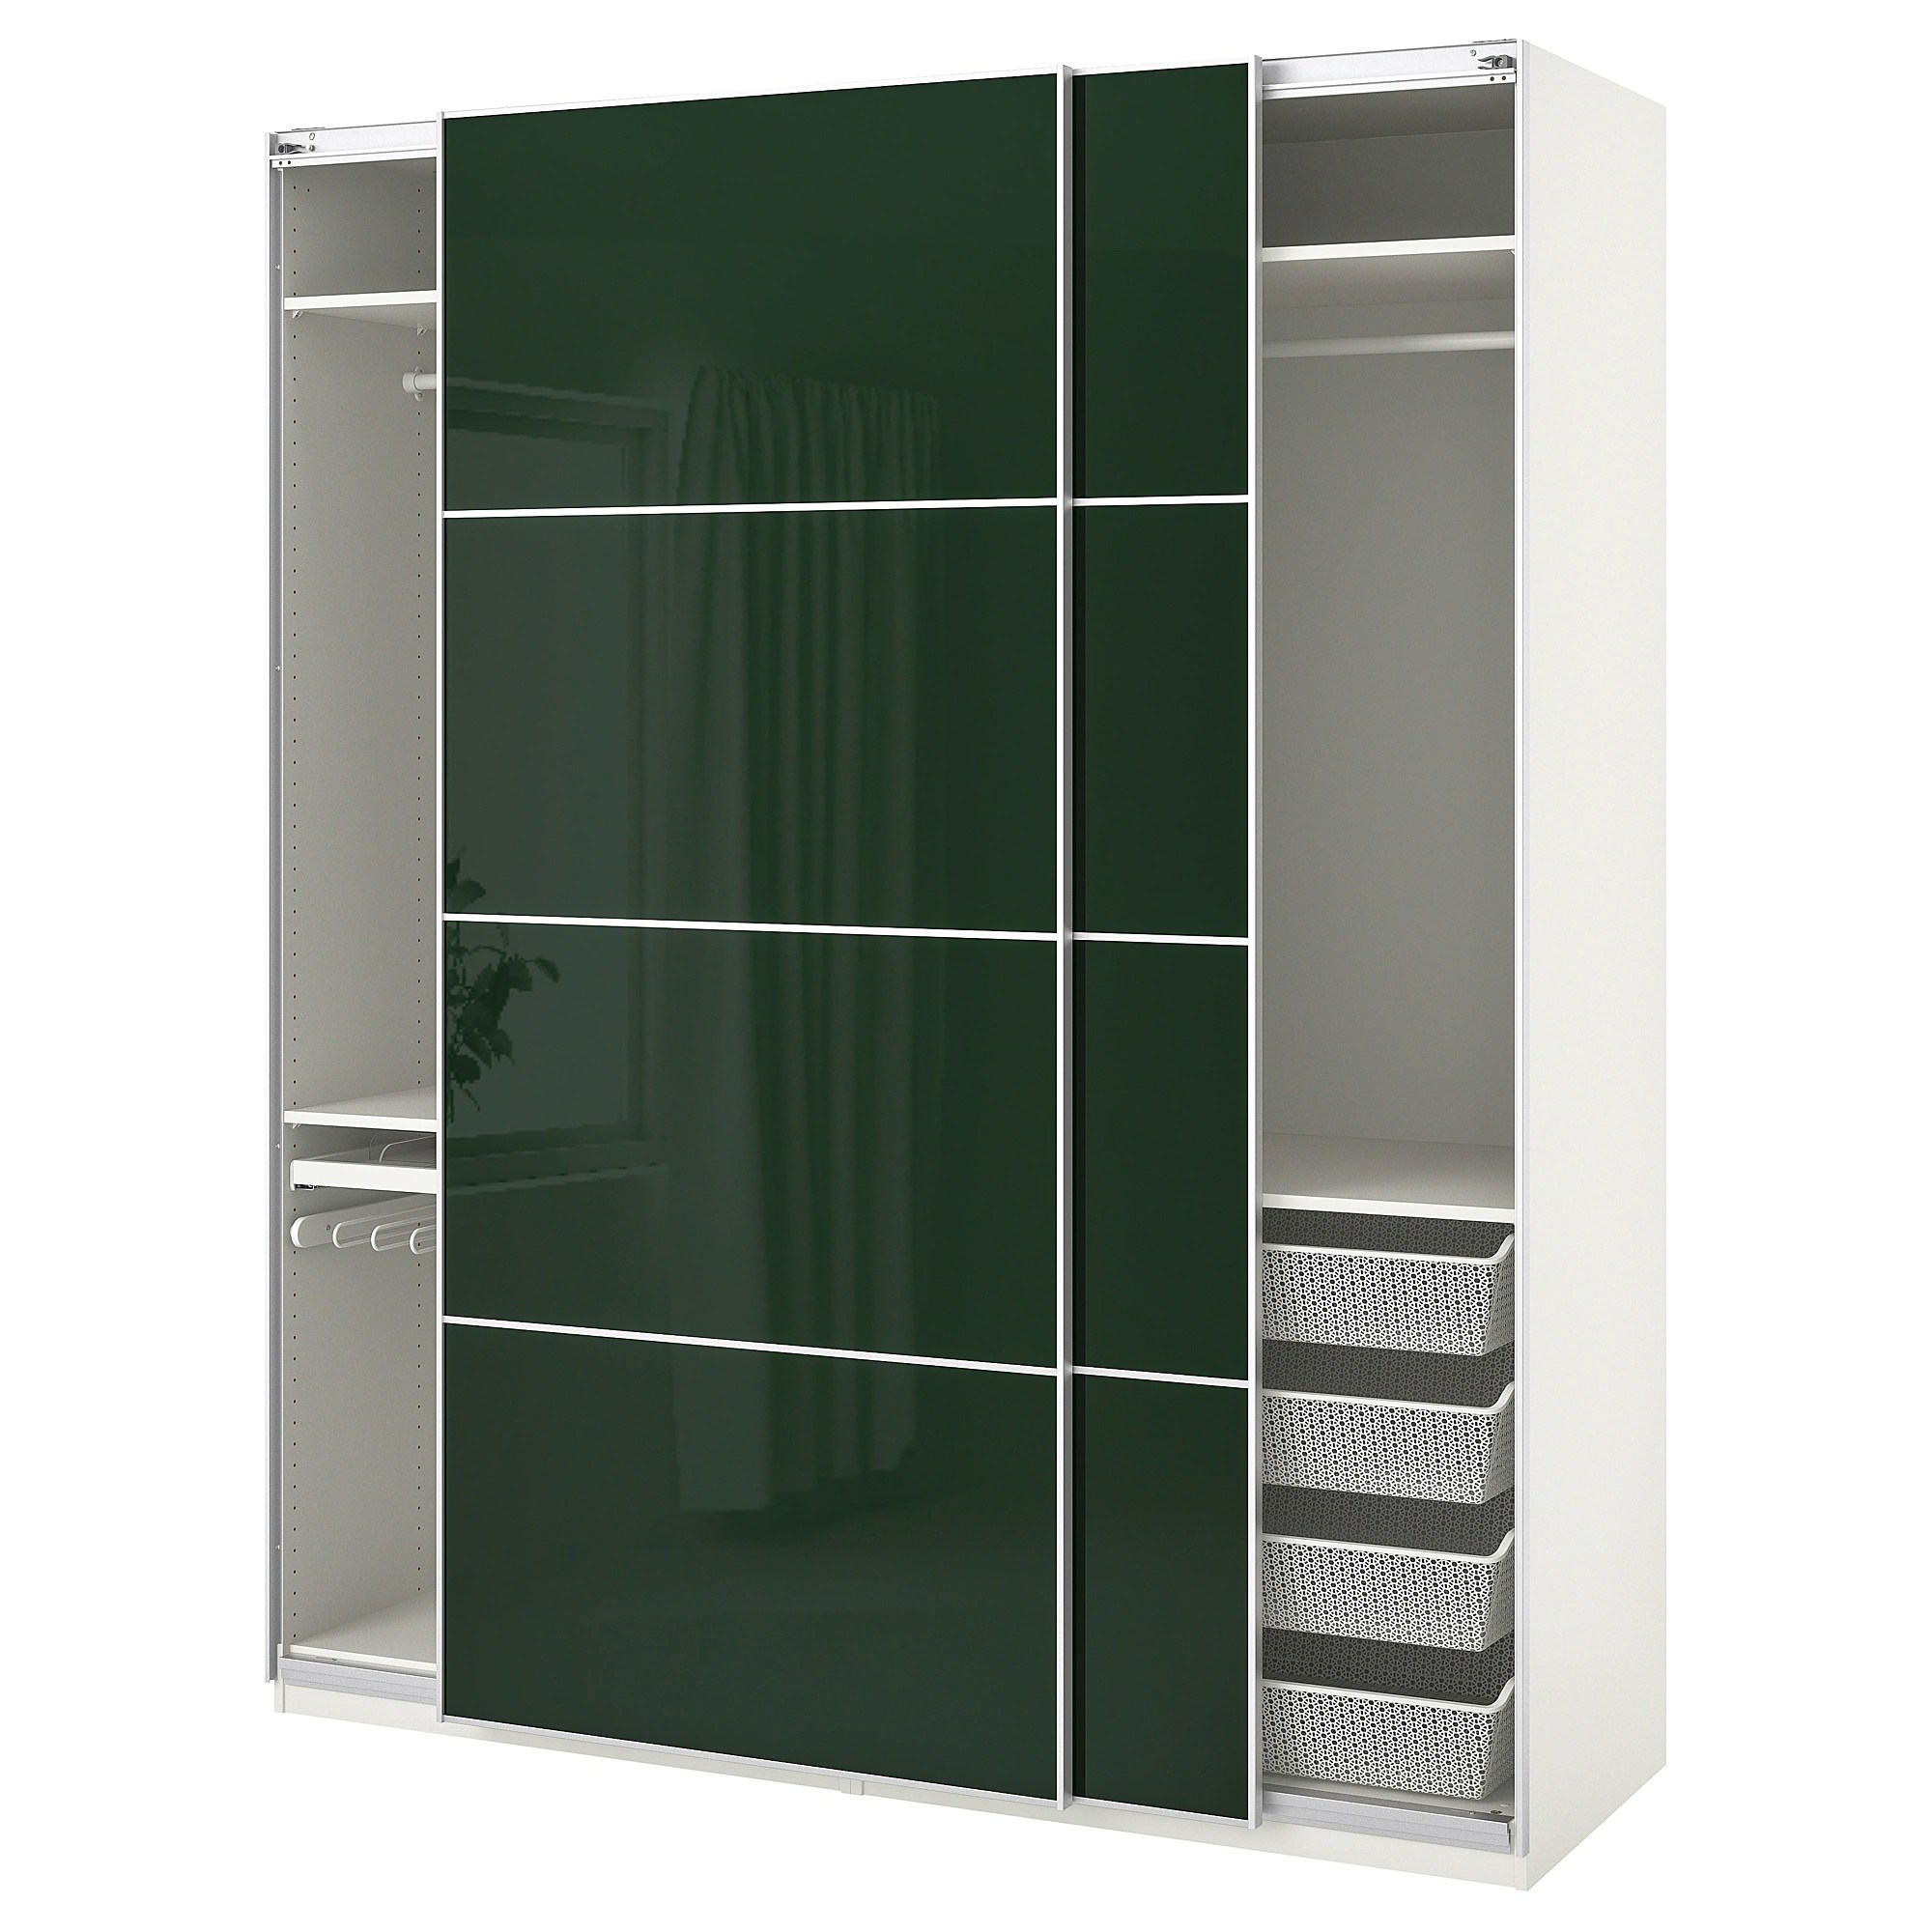 Ikea Guardaroba Pax Planner Pax Wardrobe White Hokksund Hokksund High Gloss Dark Green